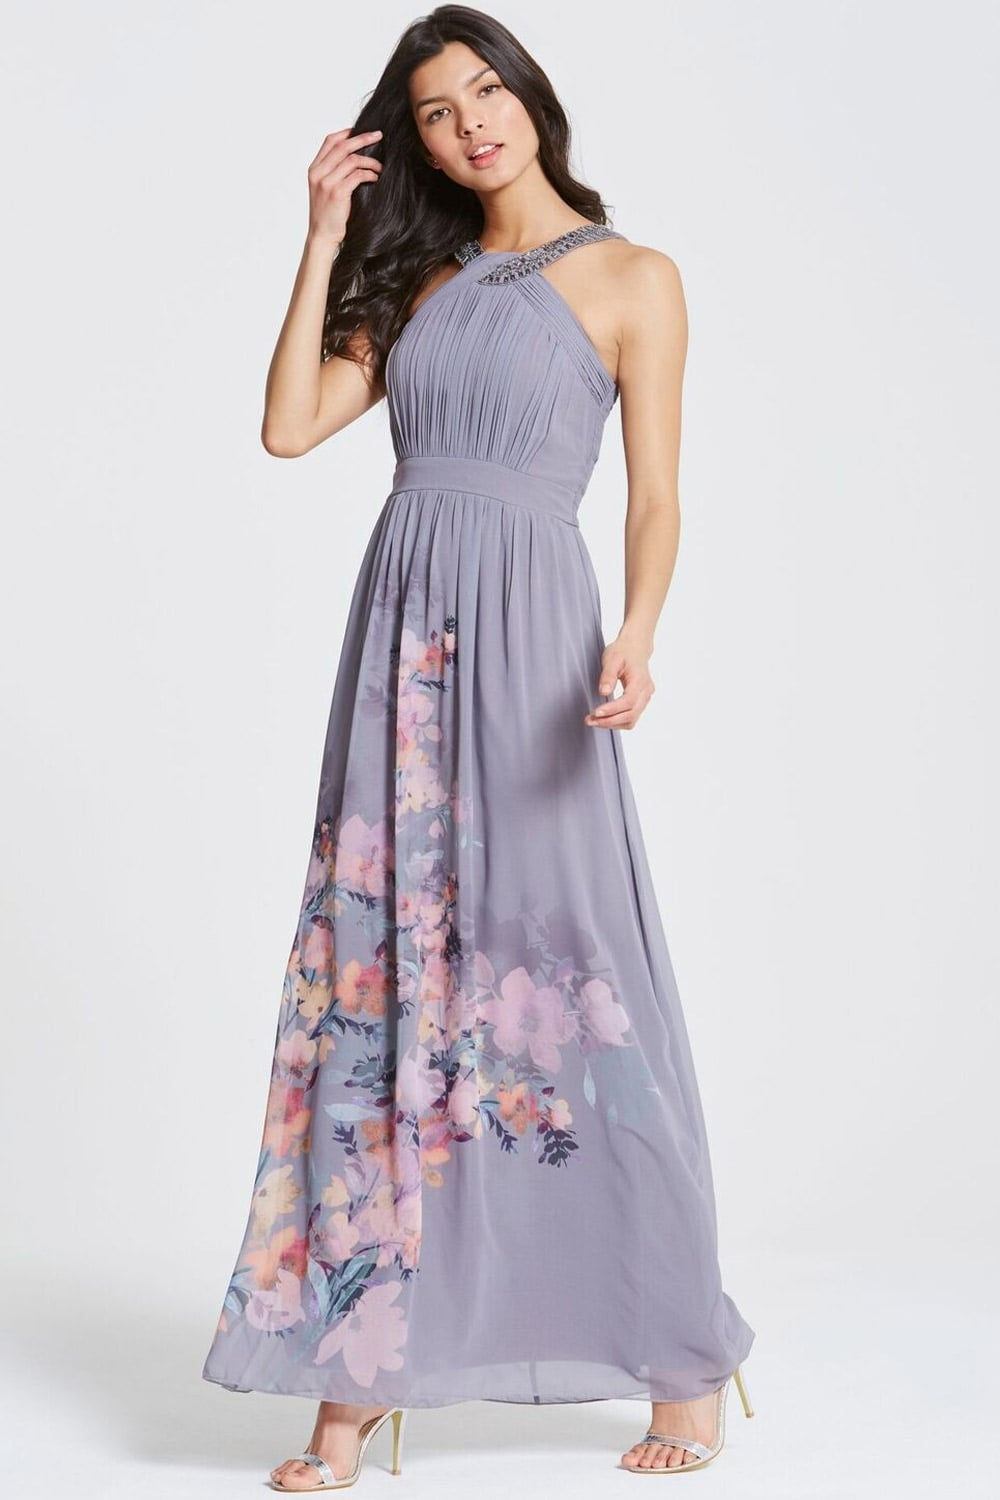 254407ff10c20 Grey Floral Print Chiffon Maxi Dress - from Little Mistress UK